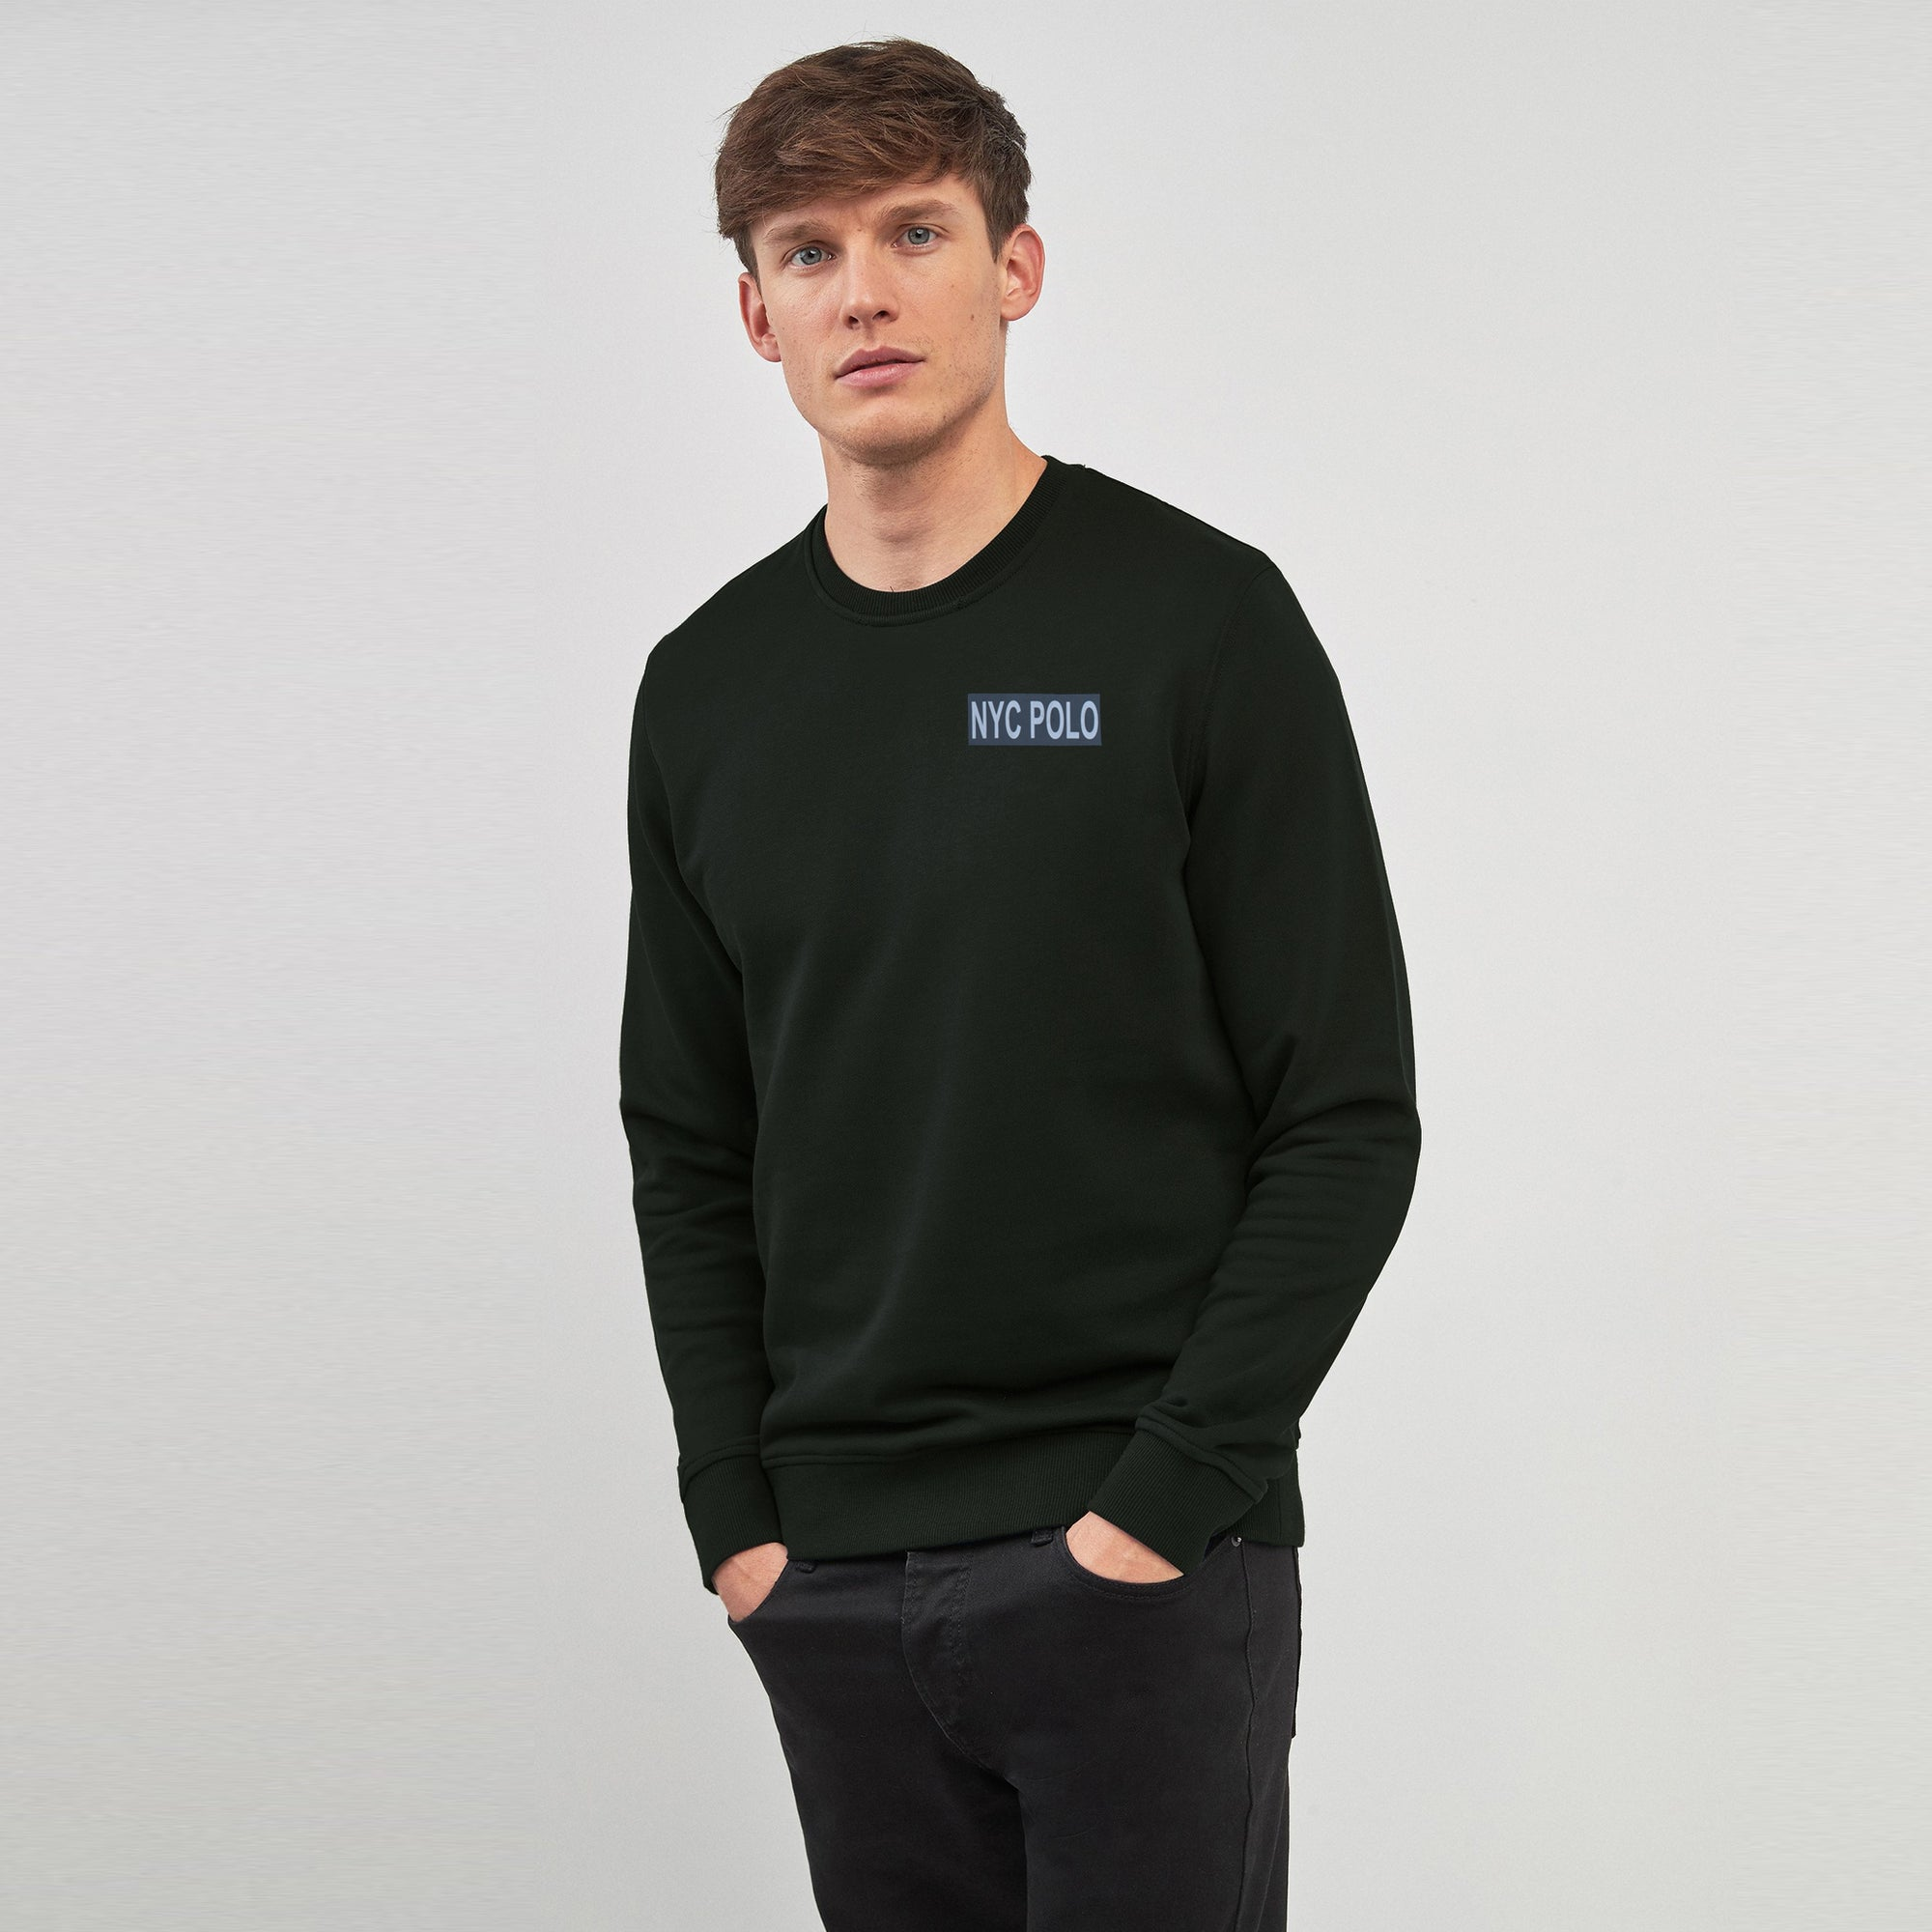 Nyc Polo Crew Neck Fleece Embroidered Sweatshirt For Men-Dark Green-SP1137